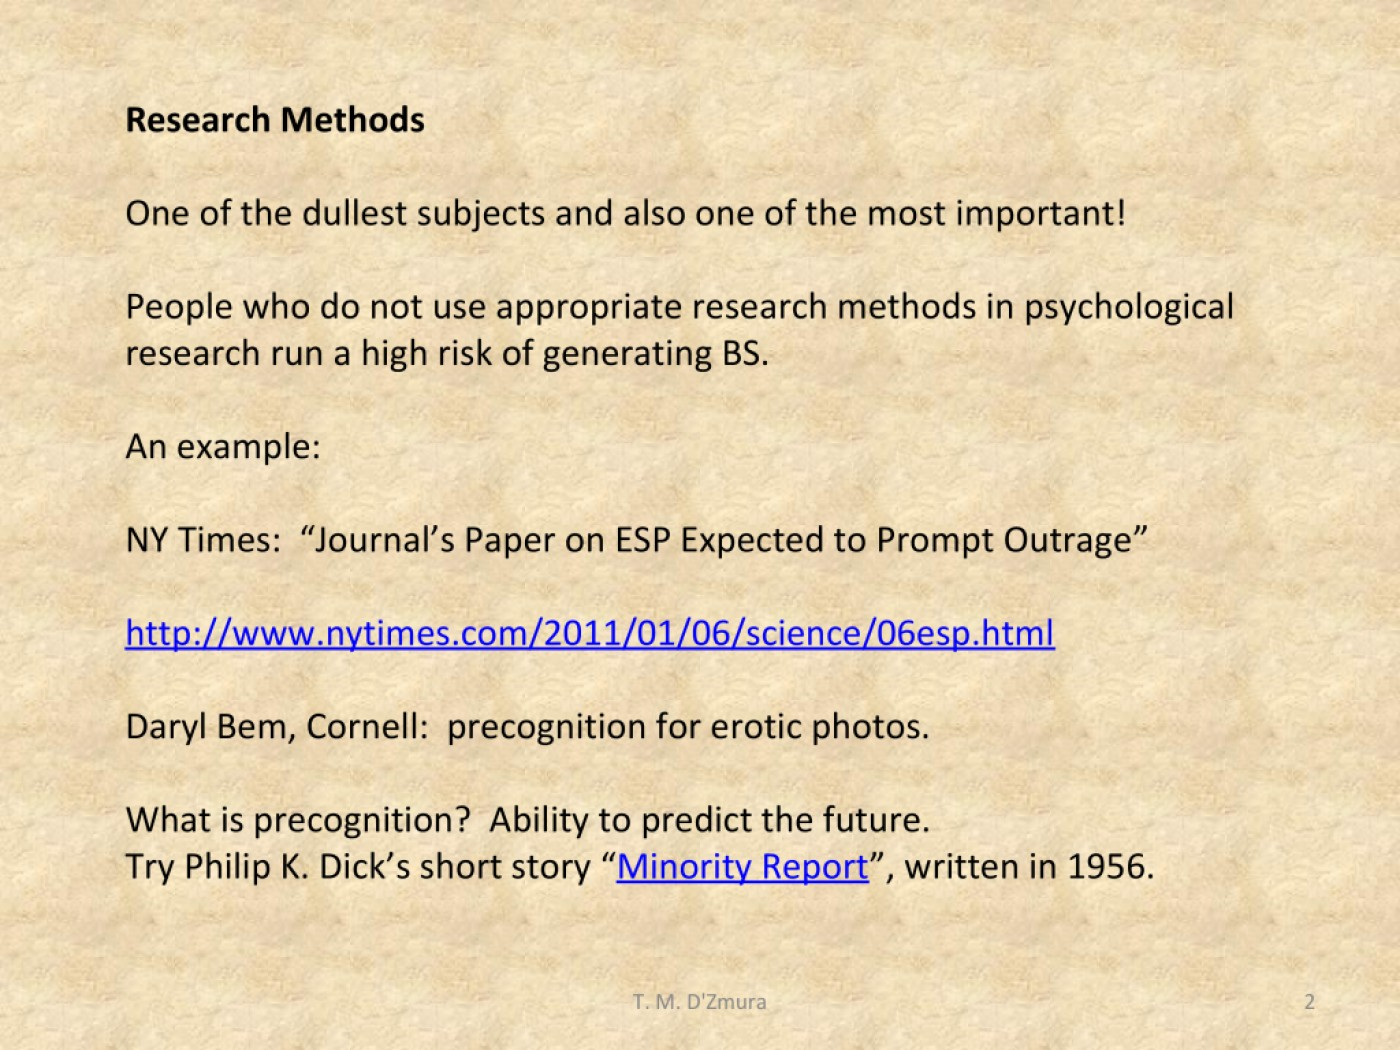 008 Psychology Research Methods Paper Example File Stunning Section 1400